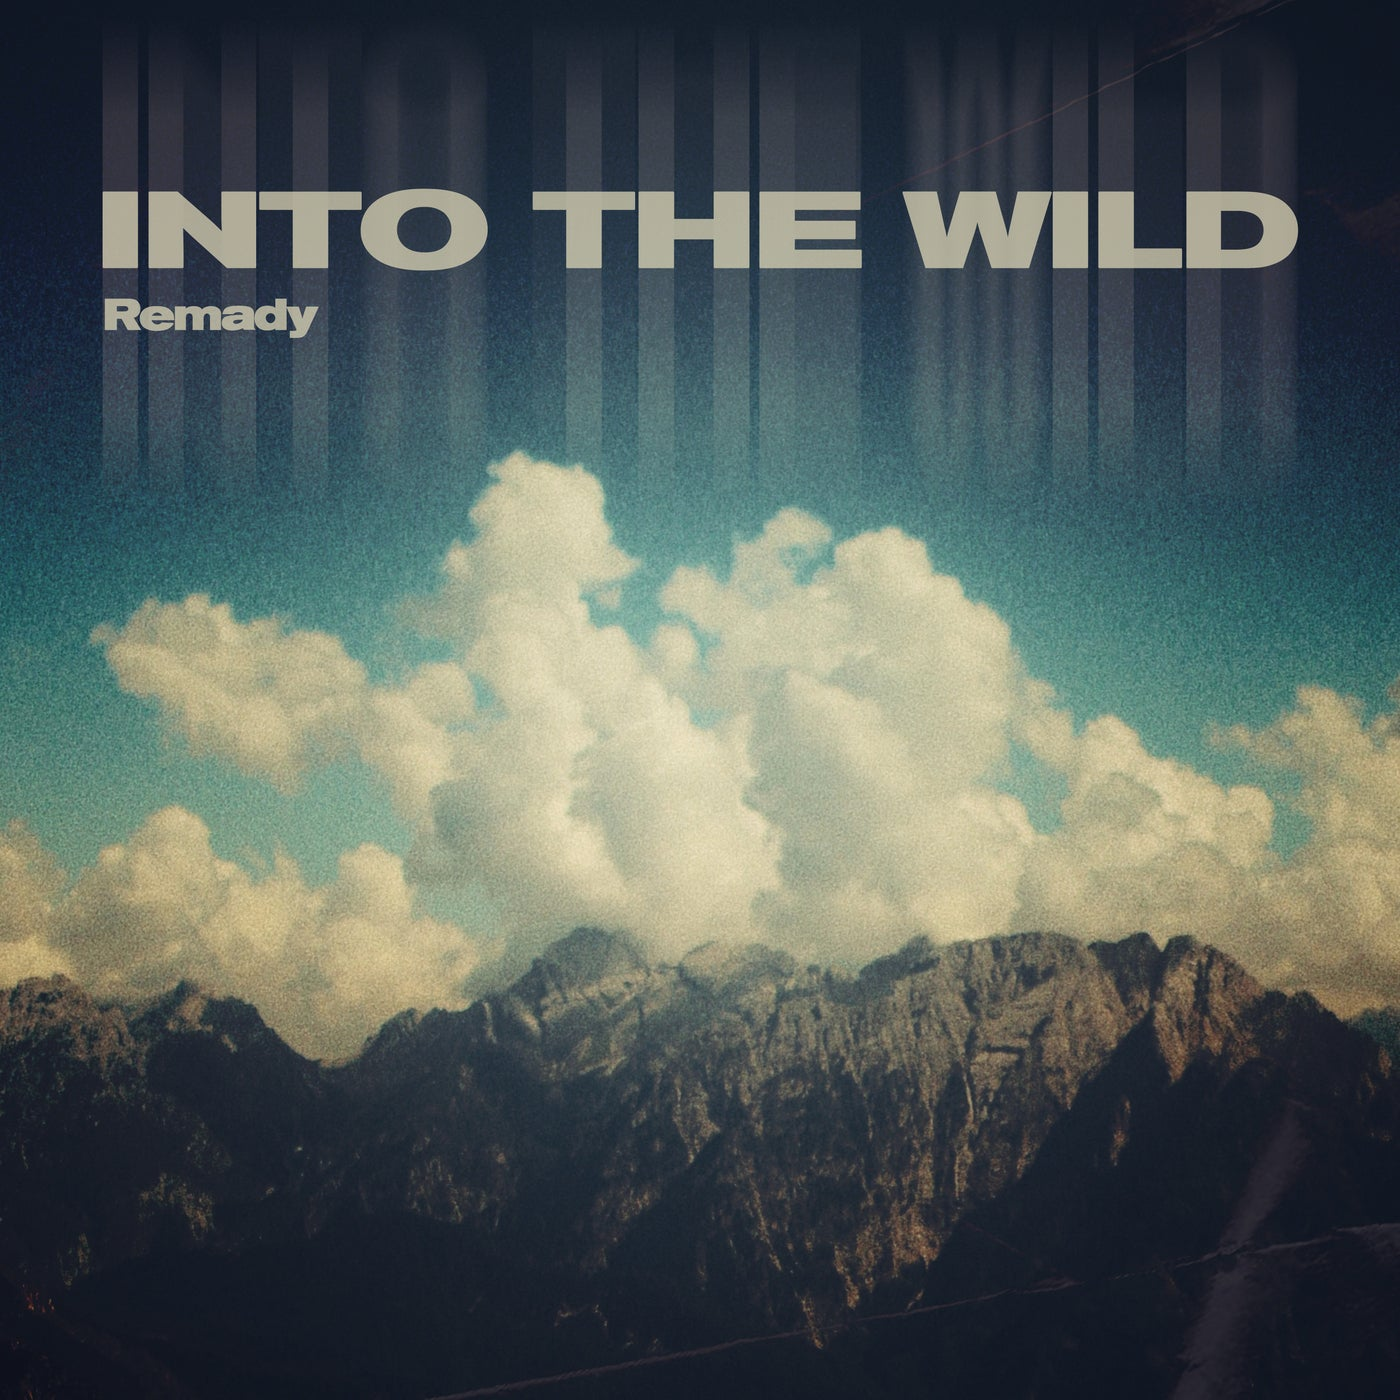 Remady - Into The Wild (Extended Mix)